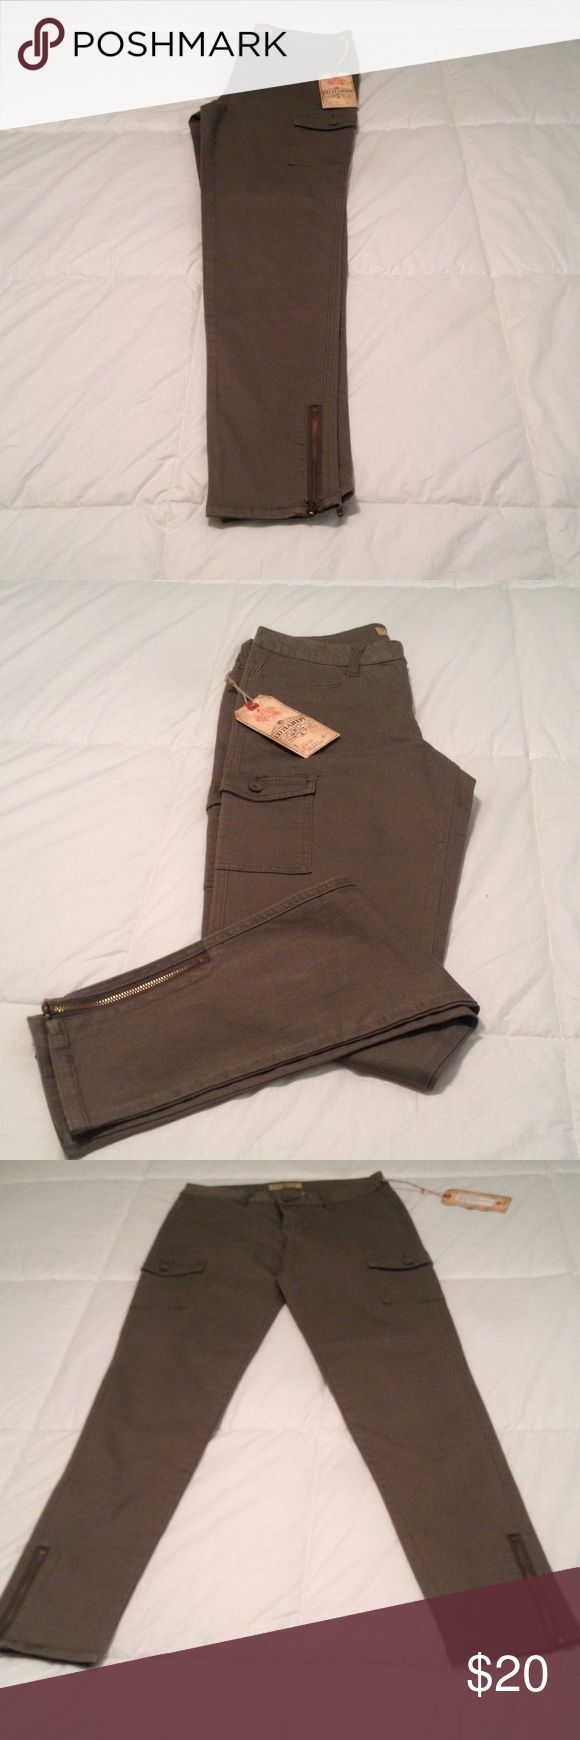 Ed Hardy ladies cargo pants Women's twill skinny cargo pants. Size 28. Color: Greenwish. Never worn. Ed Hardy Jeans Skinny